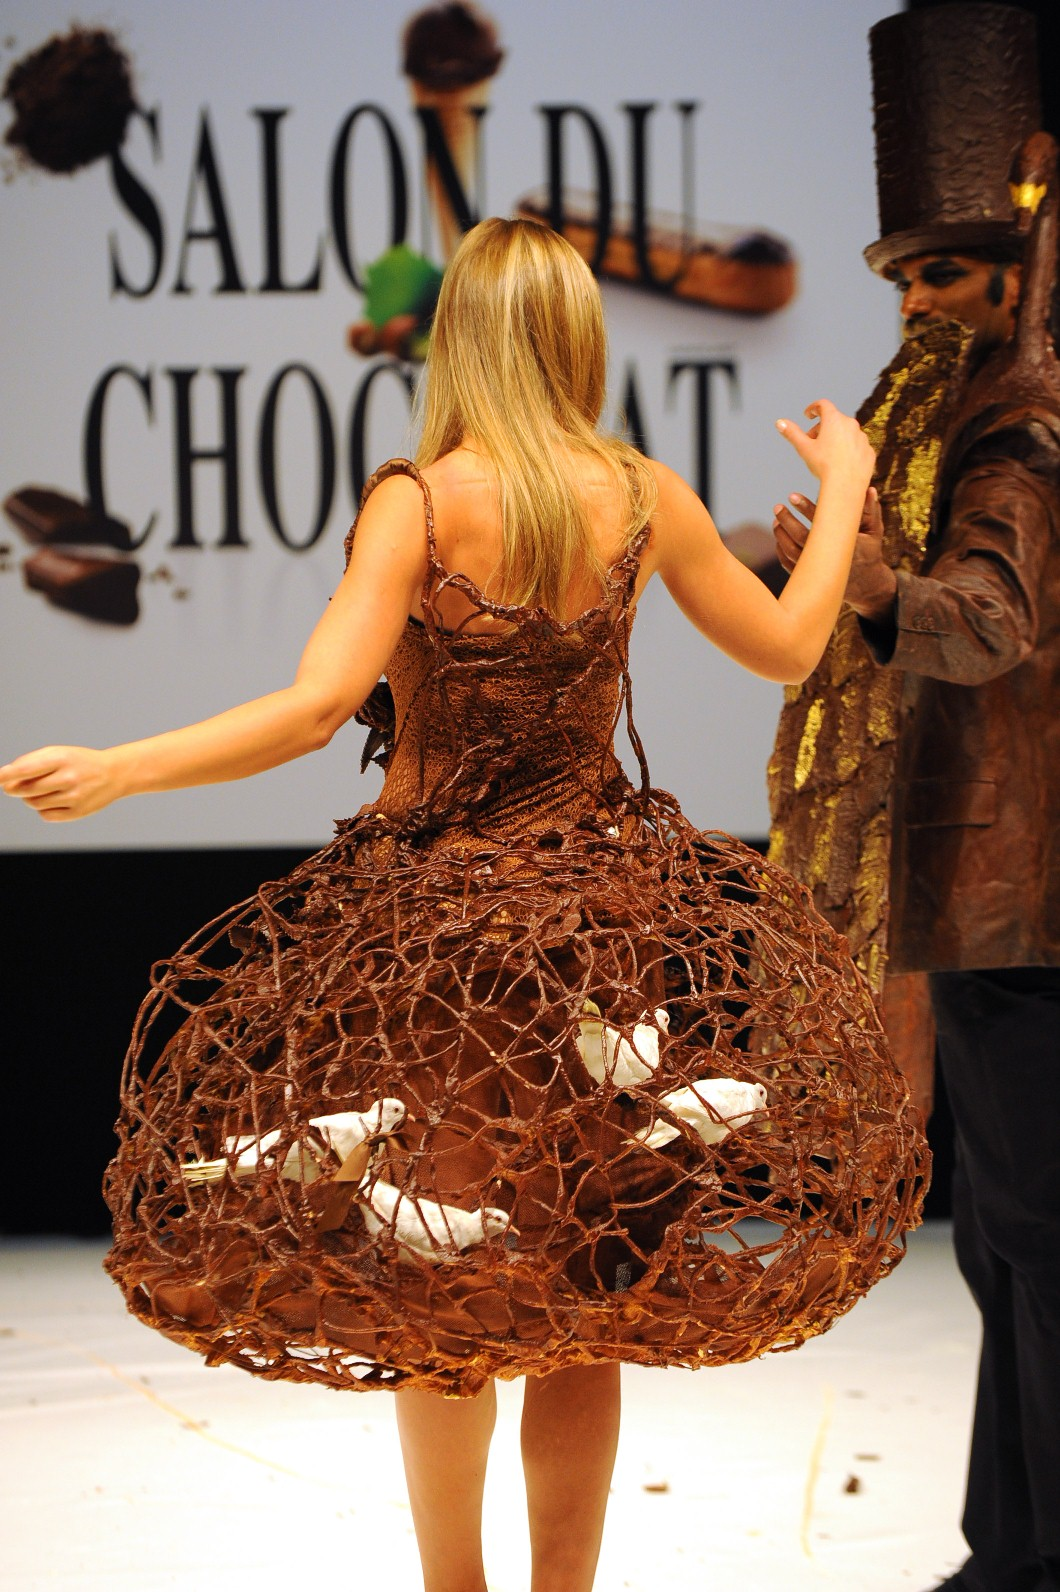 Chocolate lace dresses from pralines delicious show in paris 3 nights in - Salon du chocolat a paris ...